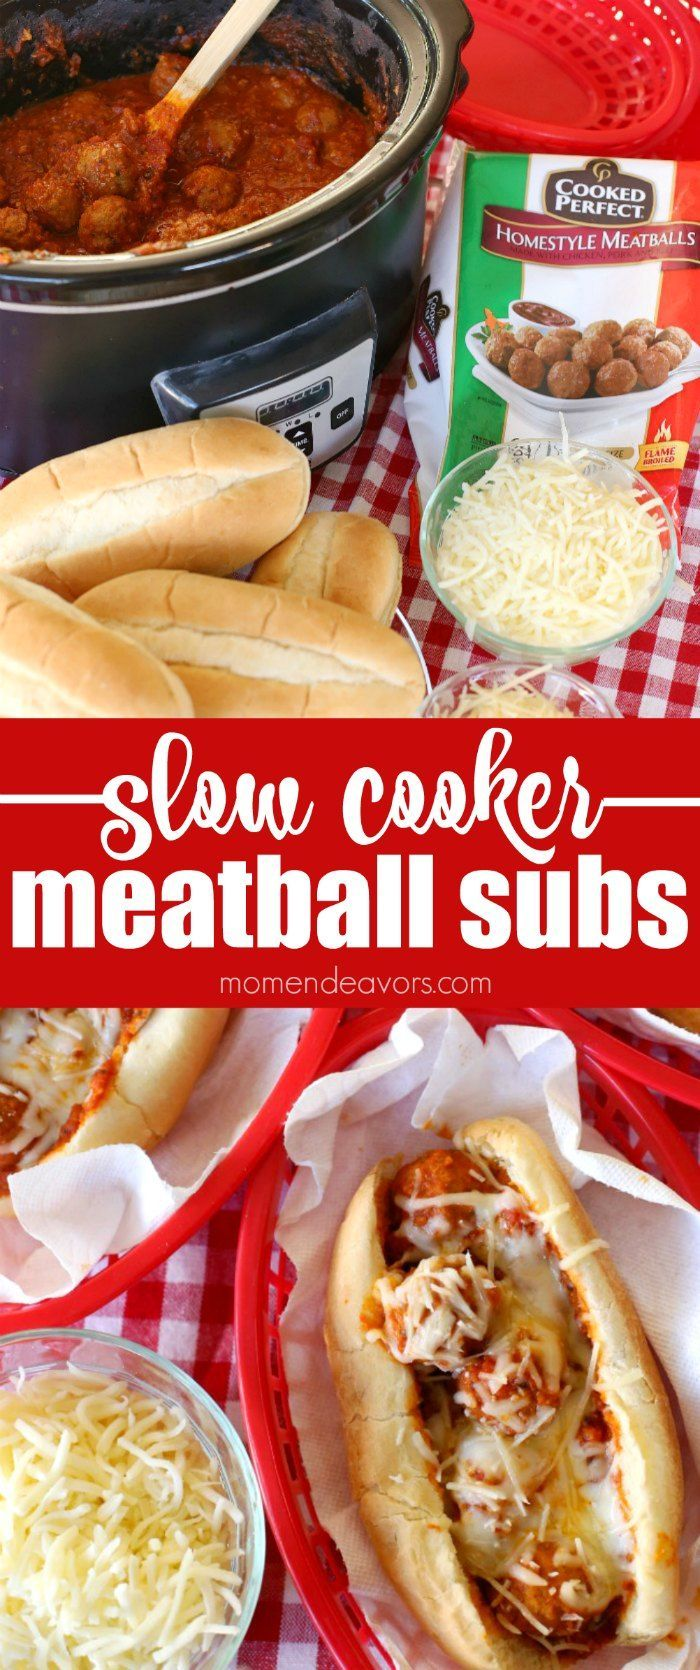 Slow Cooker Meatball Subs - this tasty & hearty dish is easy to make in the crock pot without heating up the whole house!